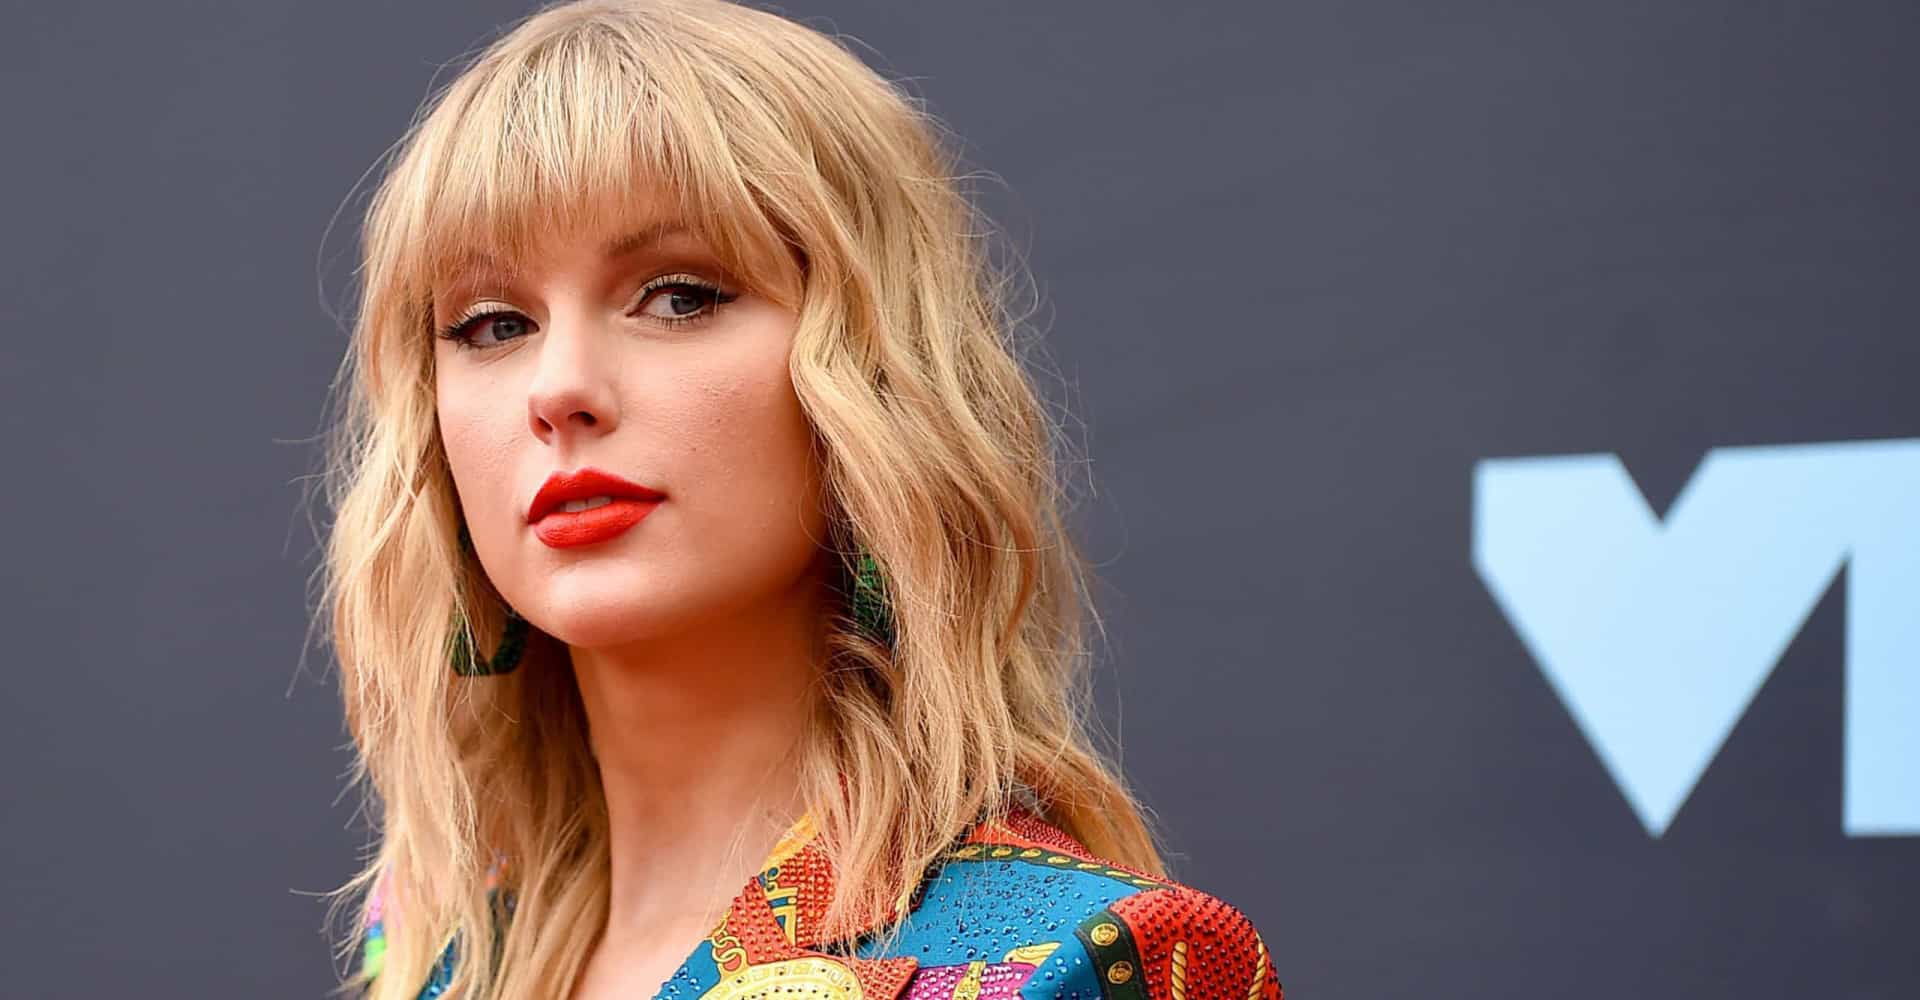 Taylor Swift and other artists accused of plagiarism